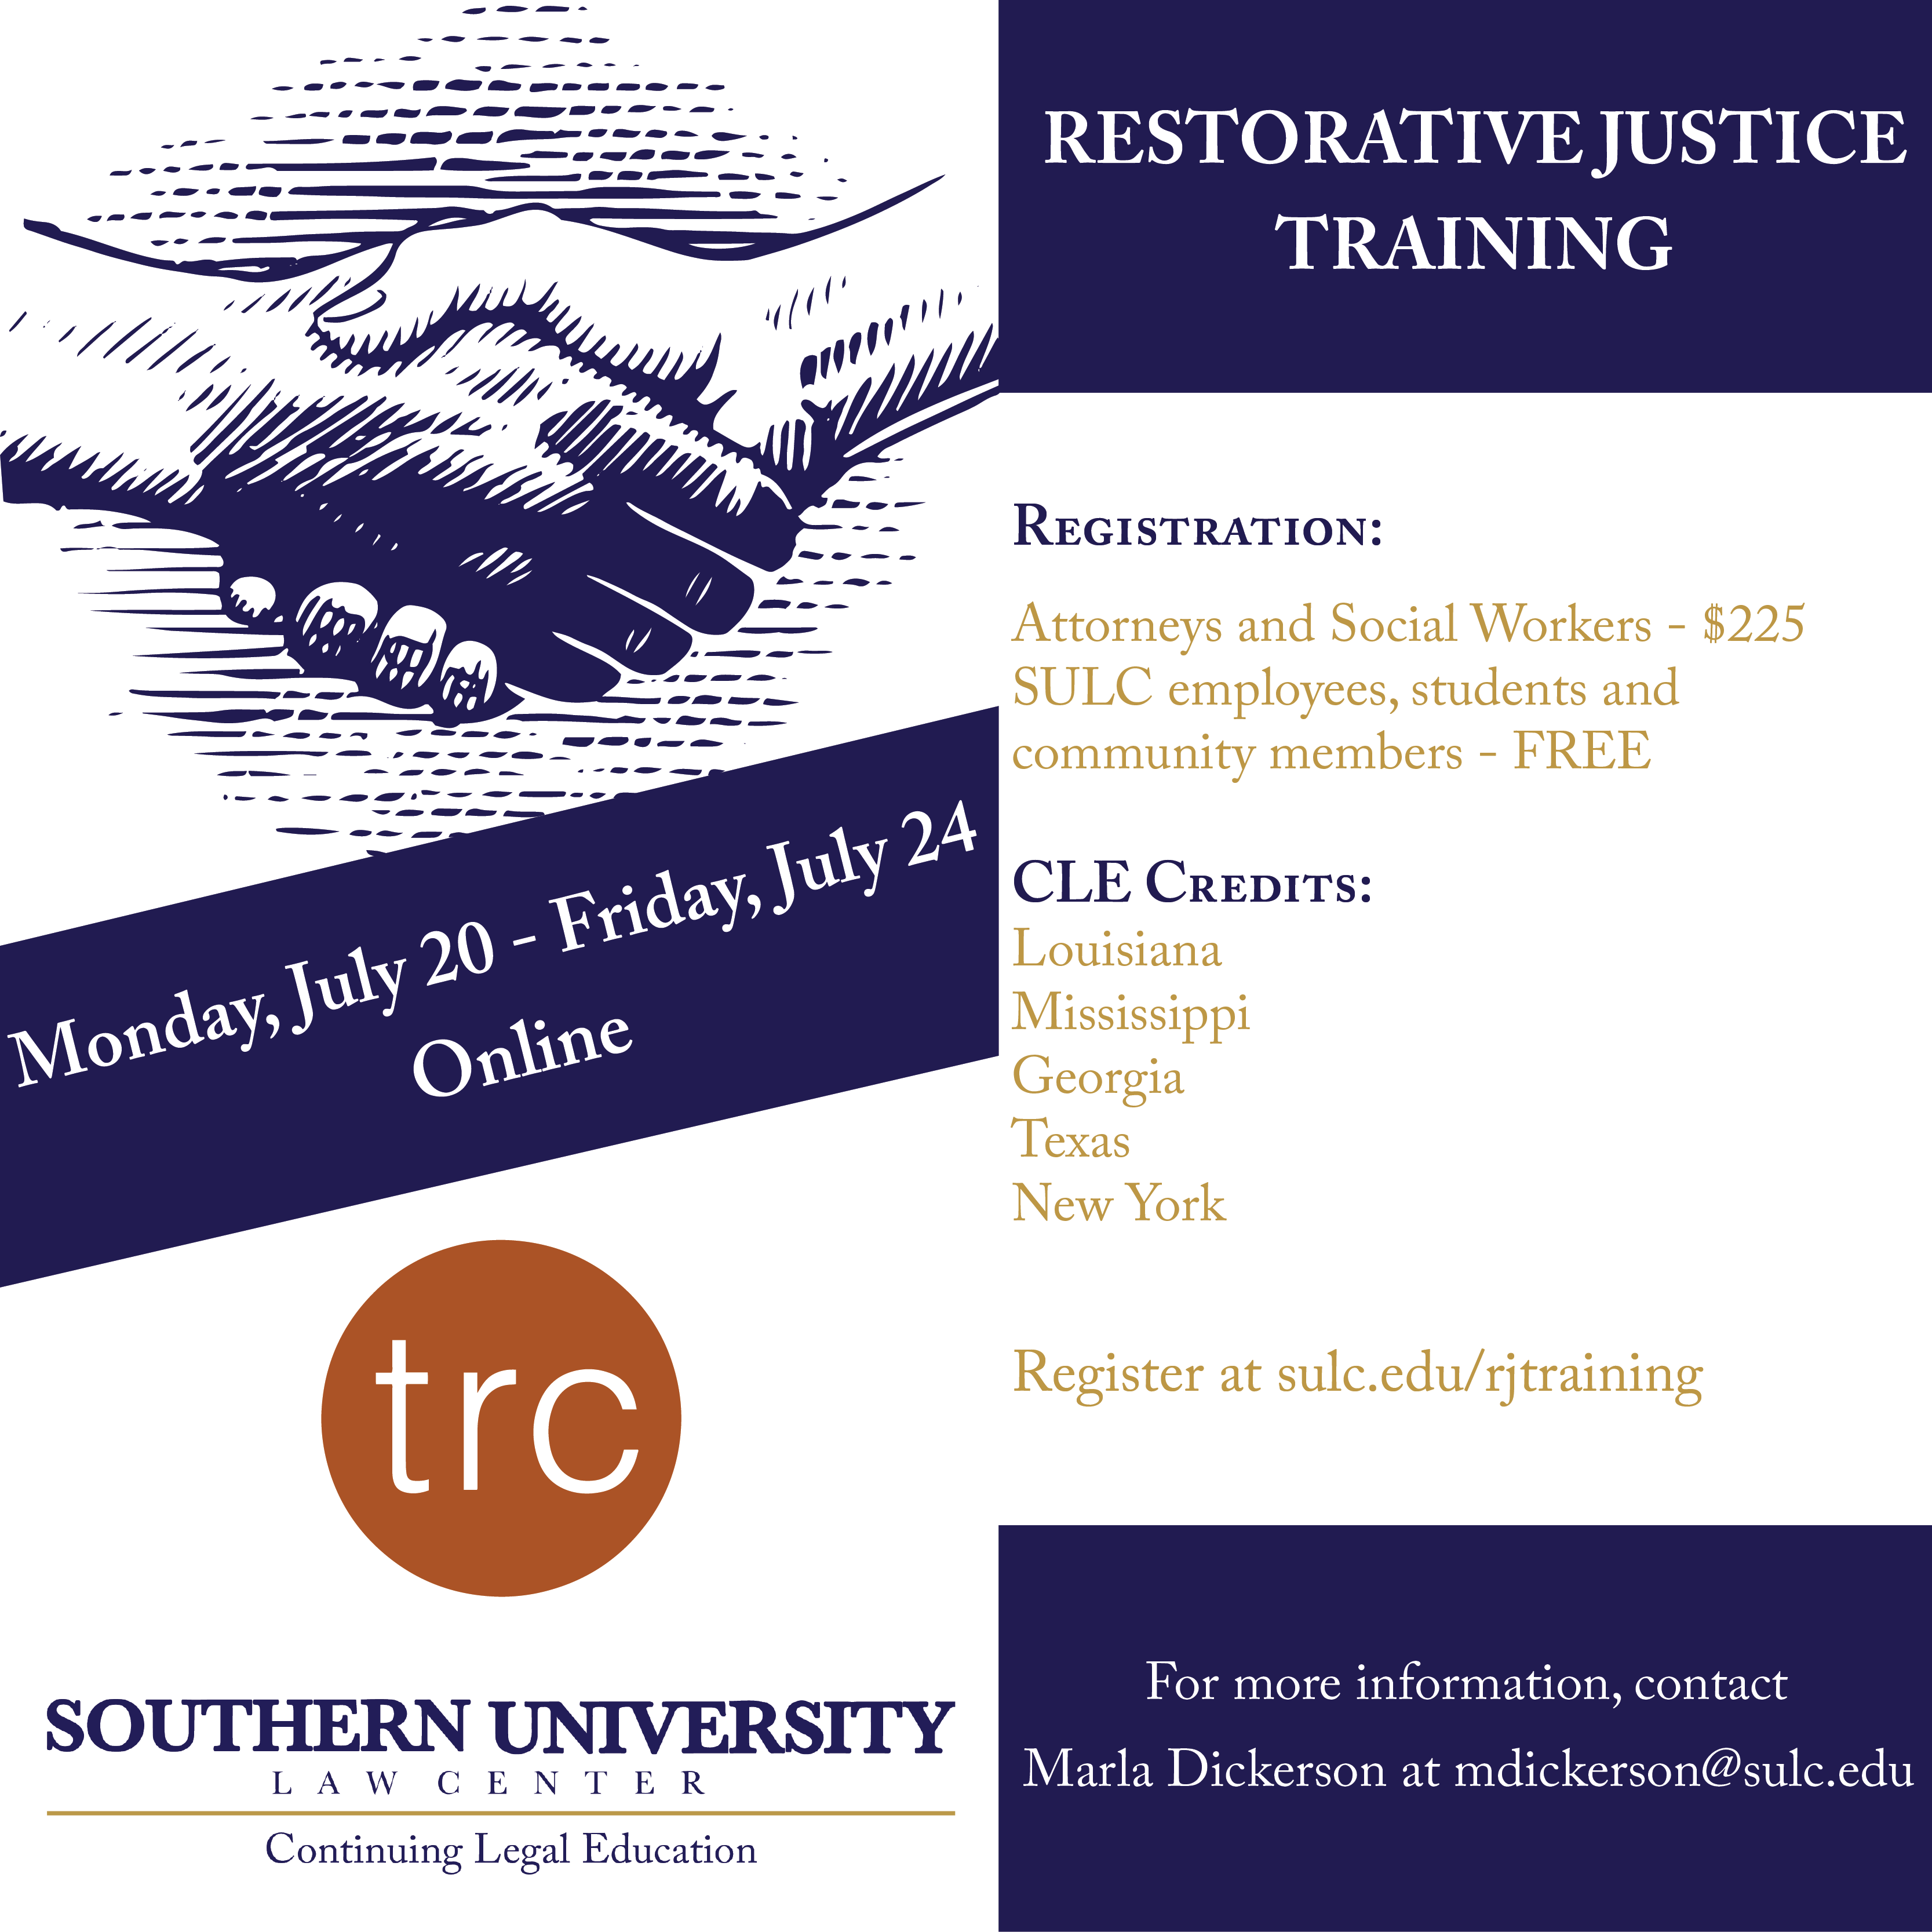 Restorative Justice Training